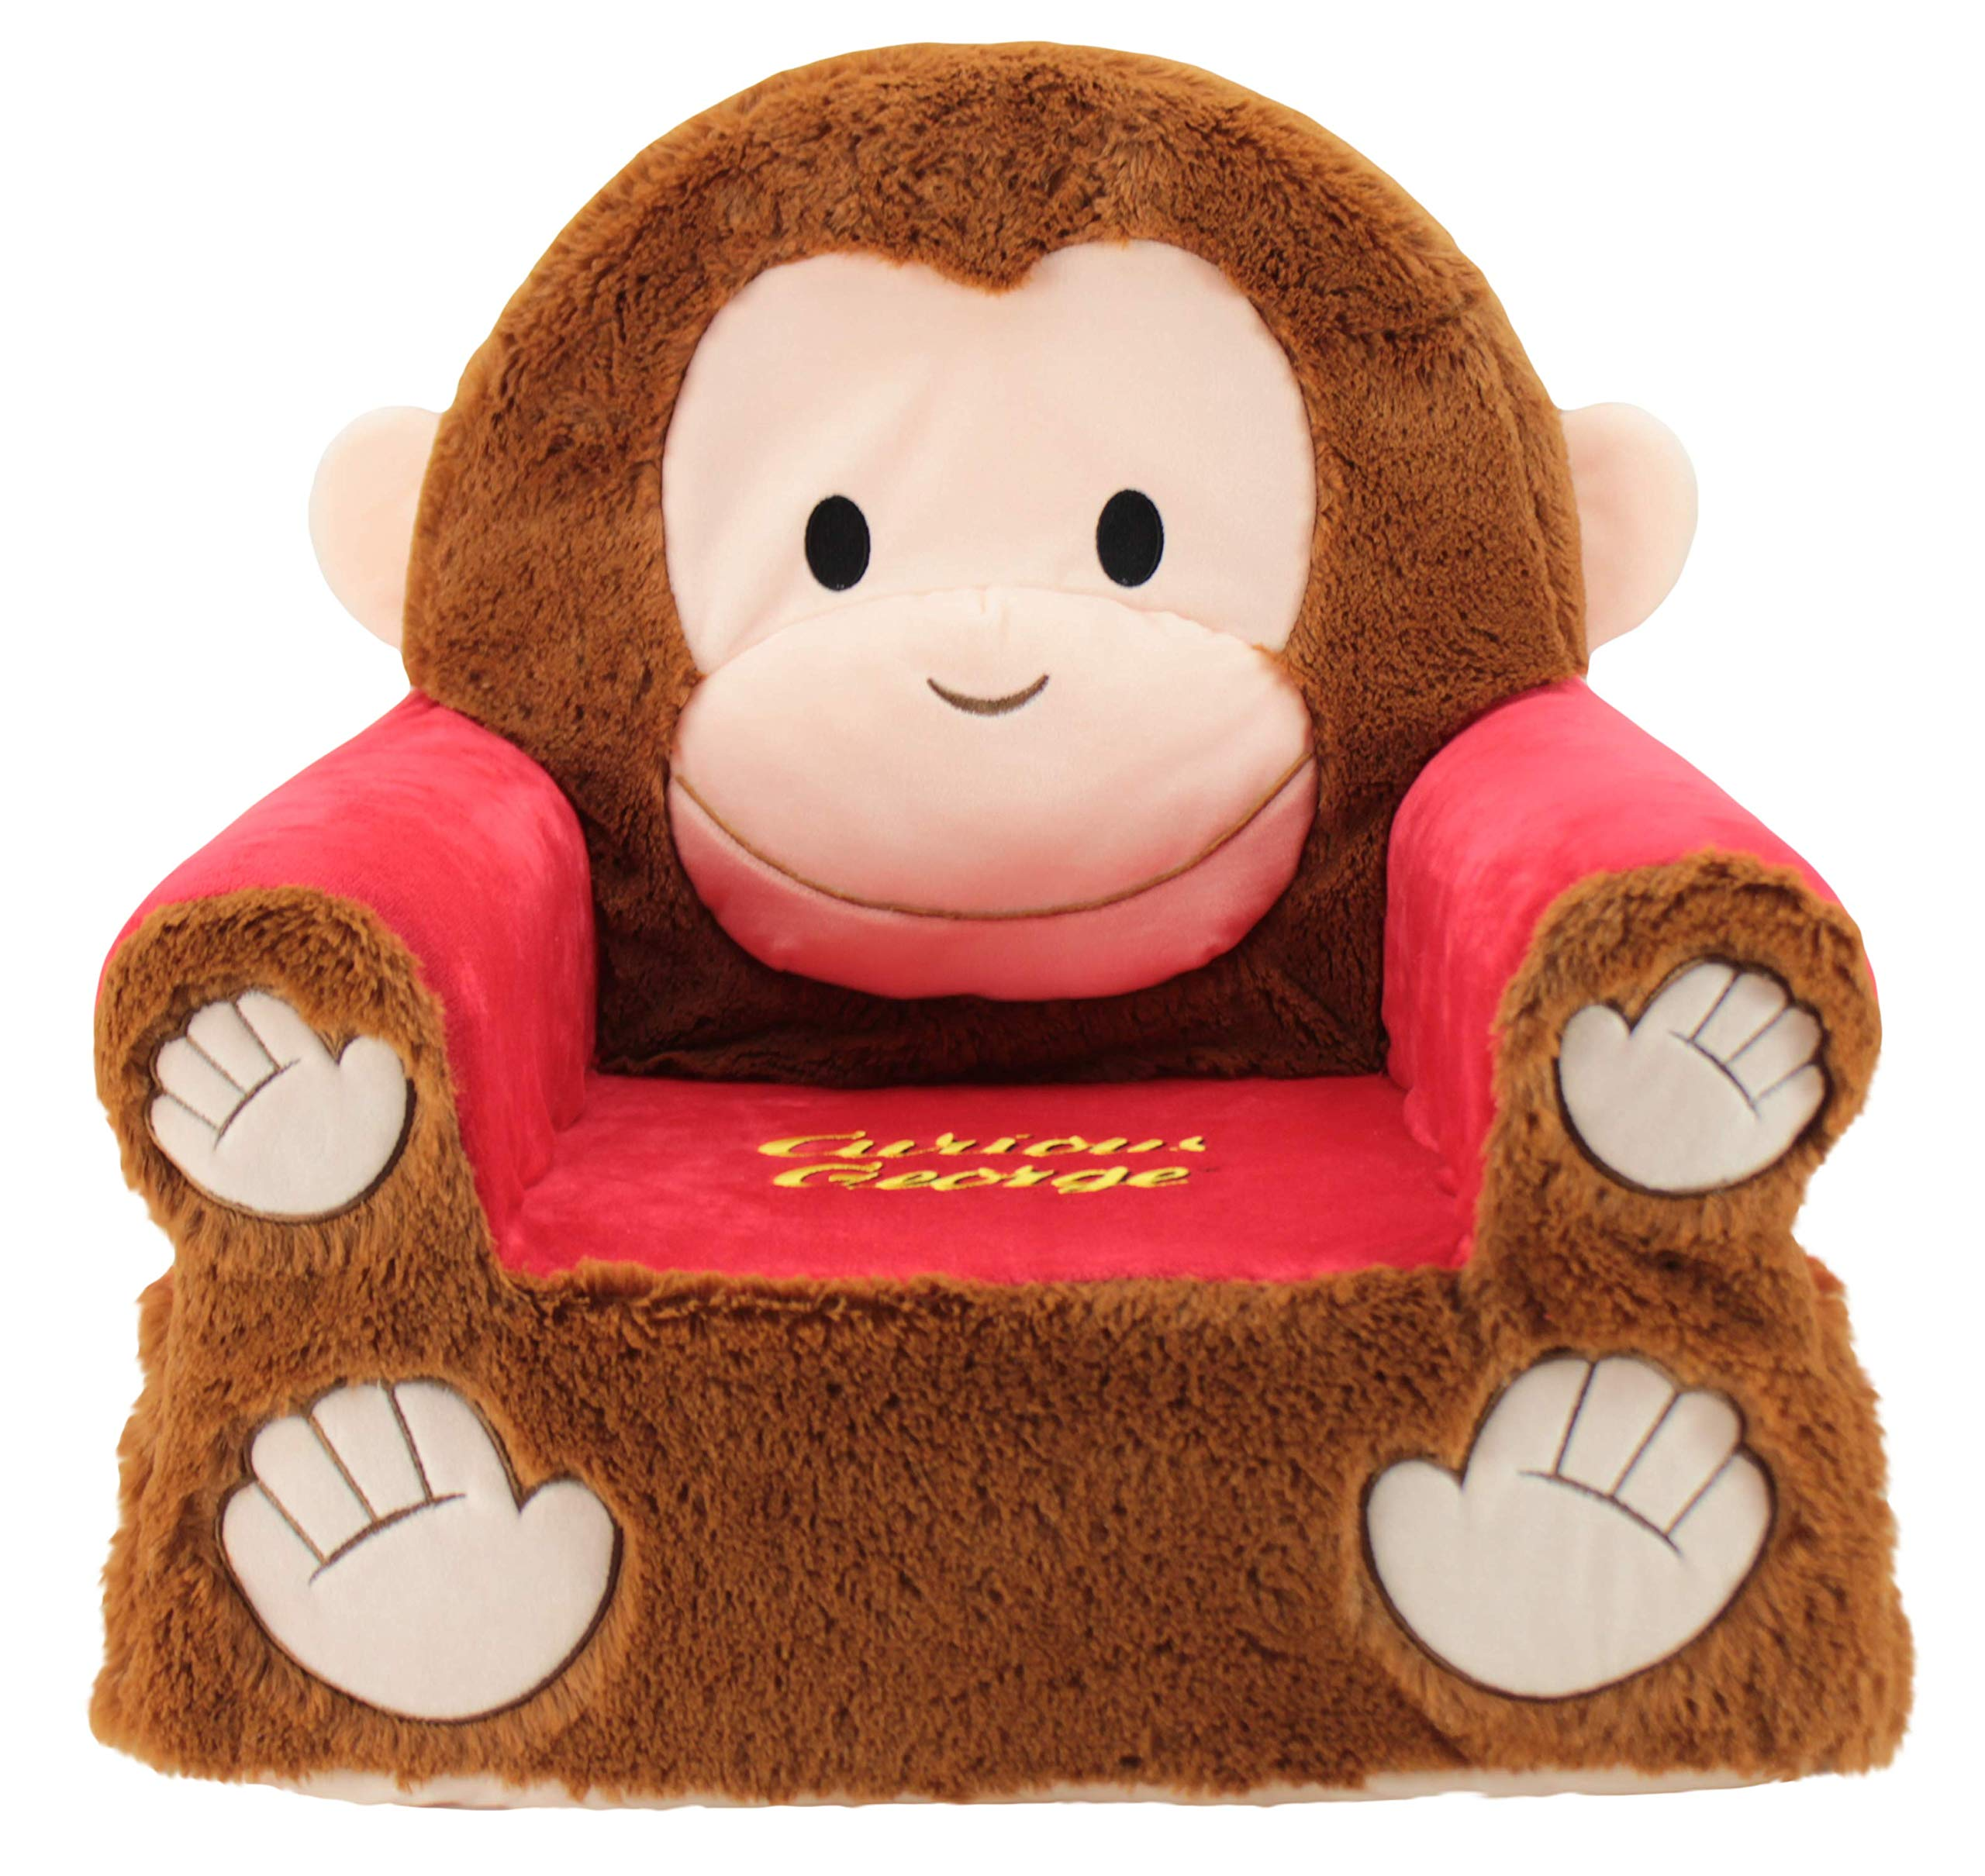 Animal Adventure 54222 Sweet Seat Plush Chair, Brown/Red